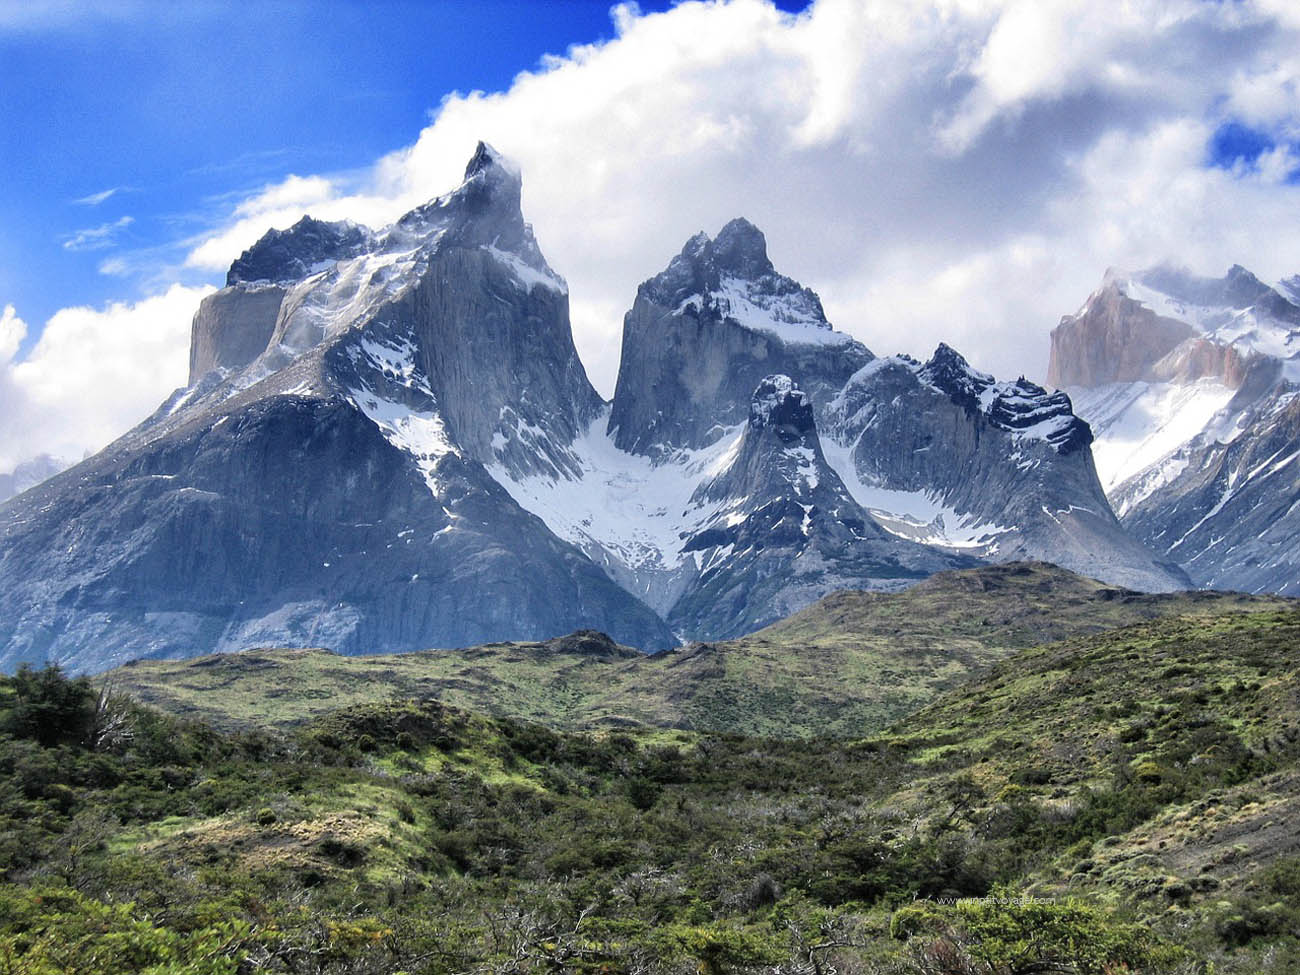 Chili-torres-del-paine-sommets